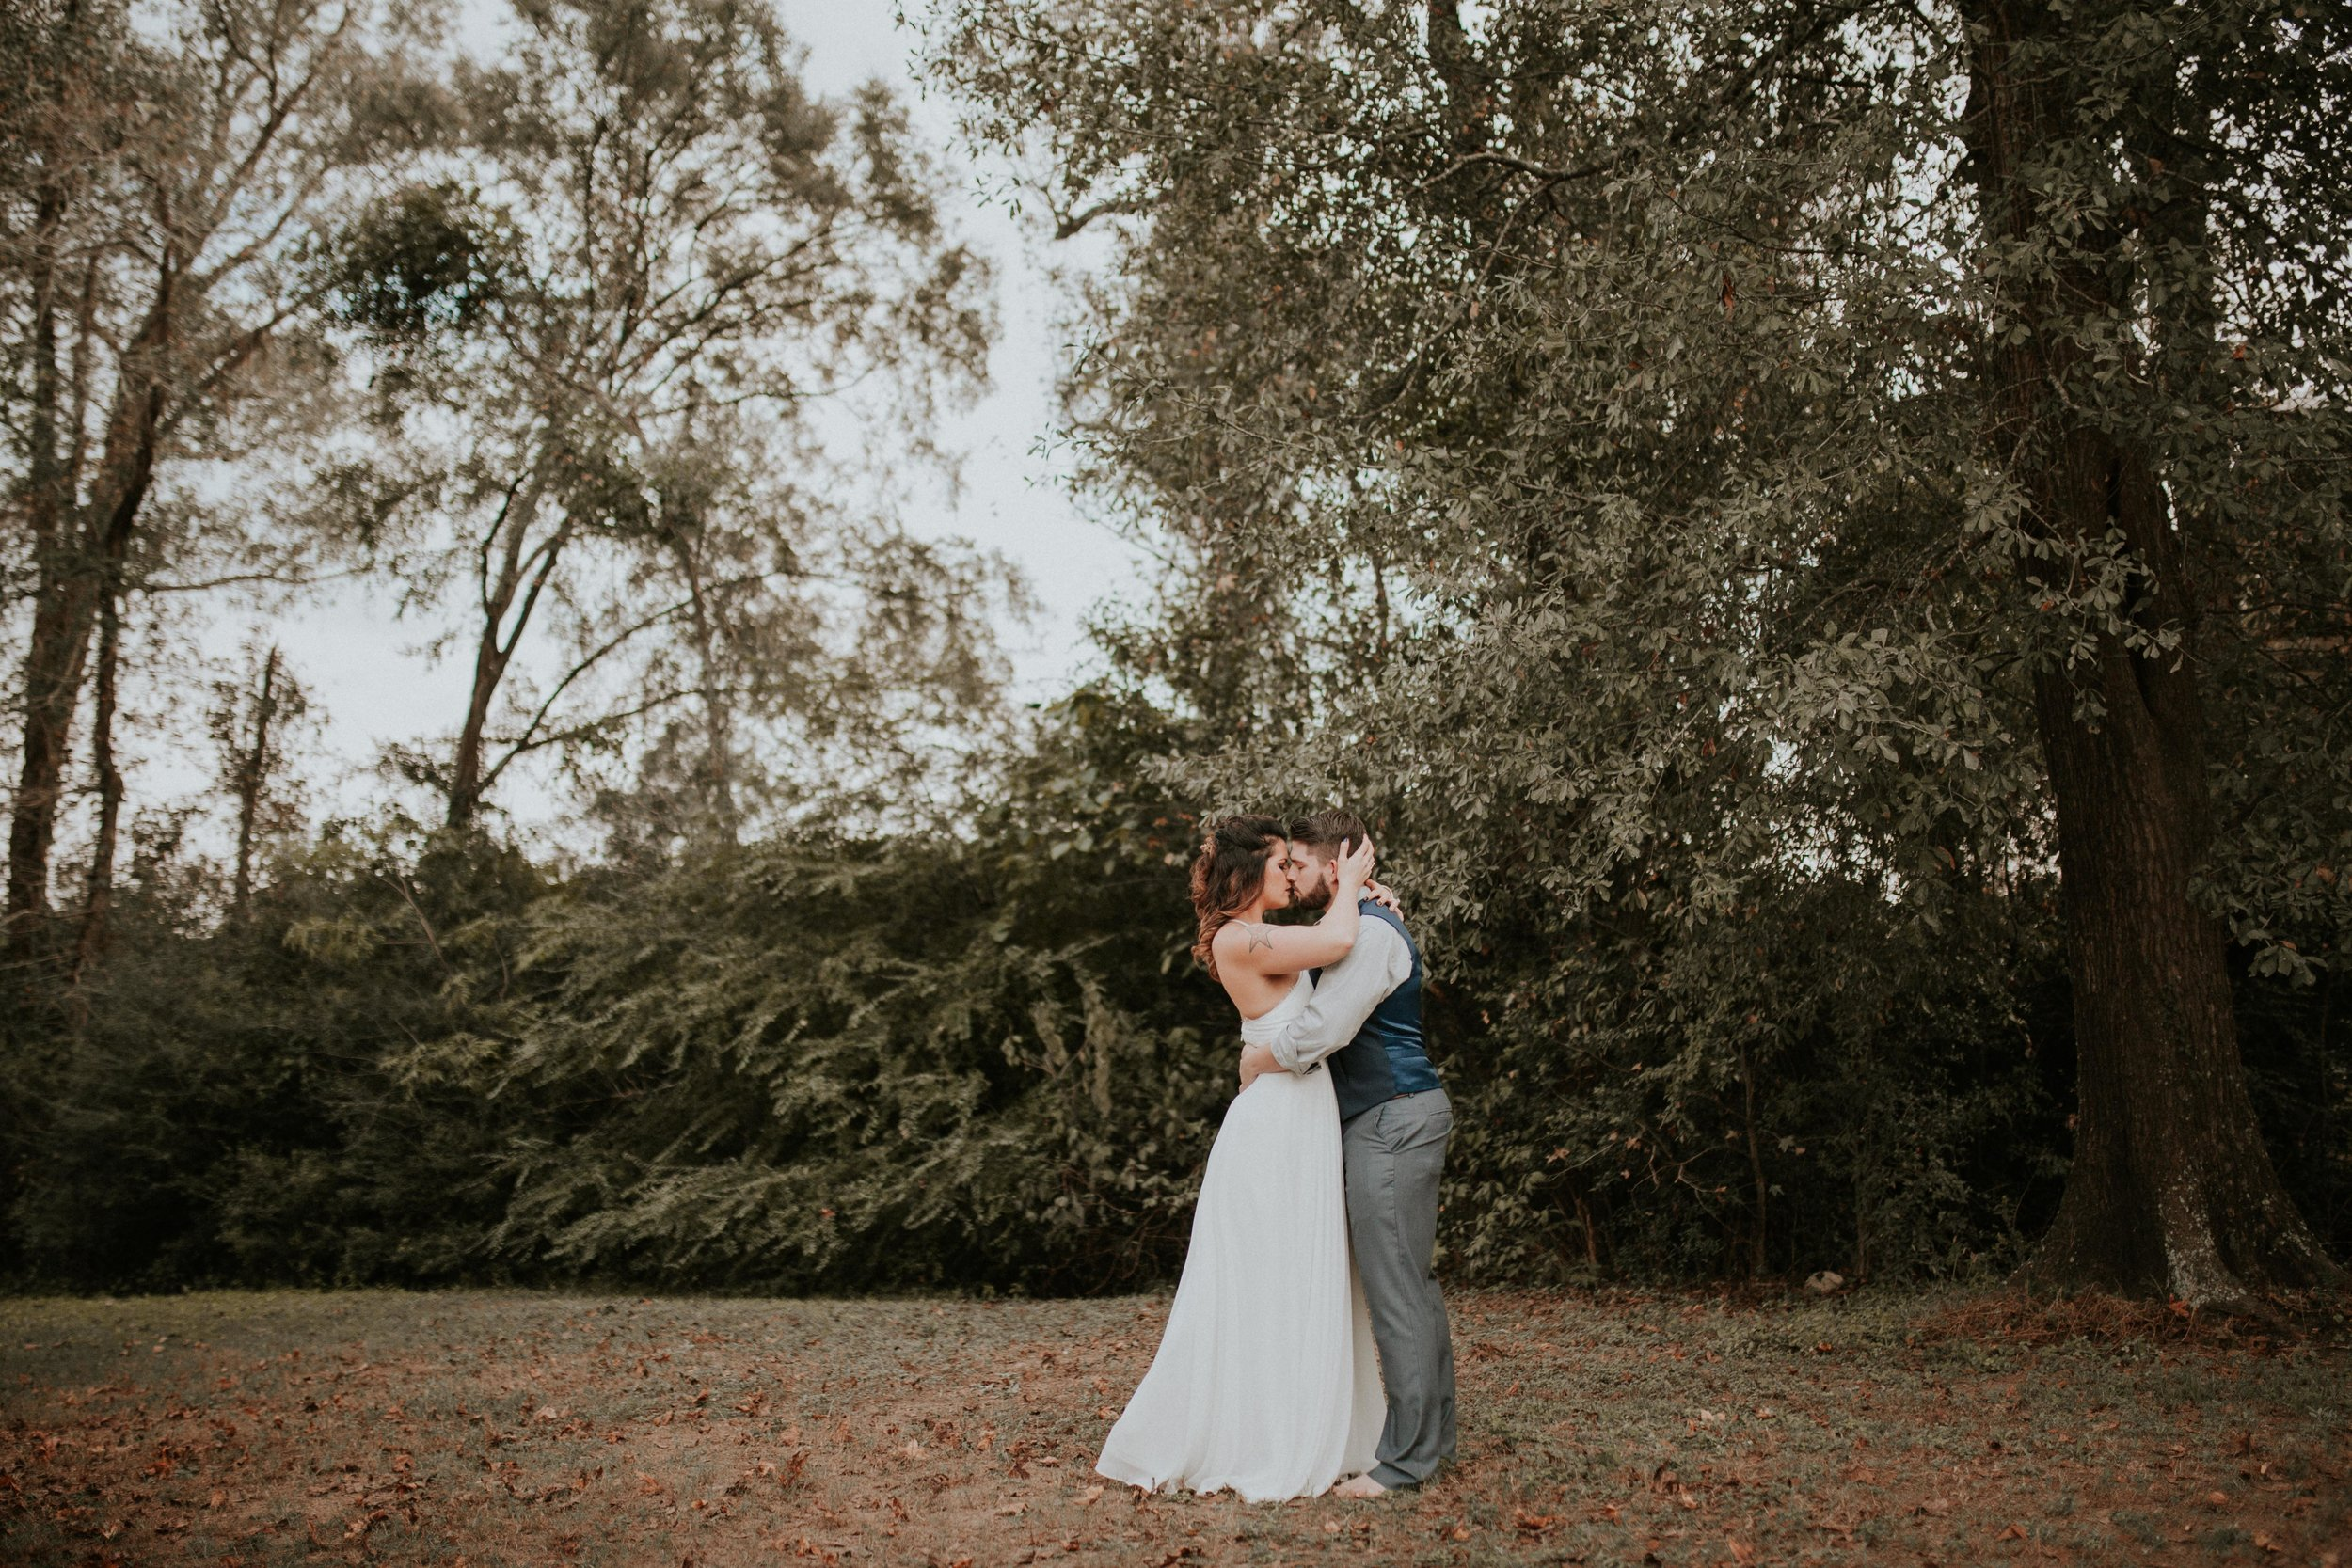 Vow Renewal in Magnolia Texas - Madeleine Frost Wedding Photographer - Sized for Blog-29.jpg